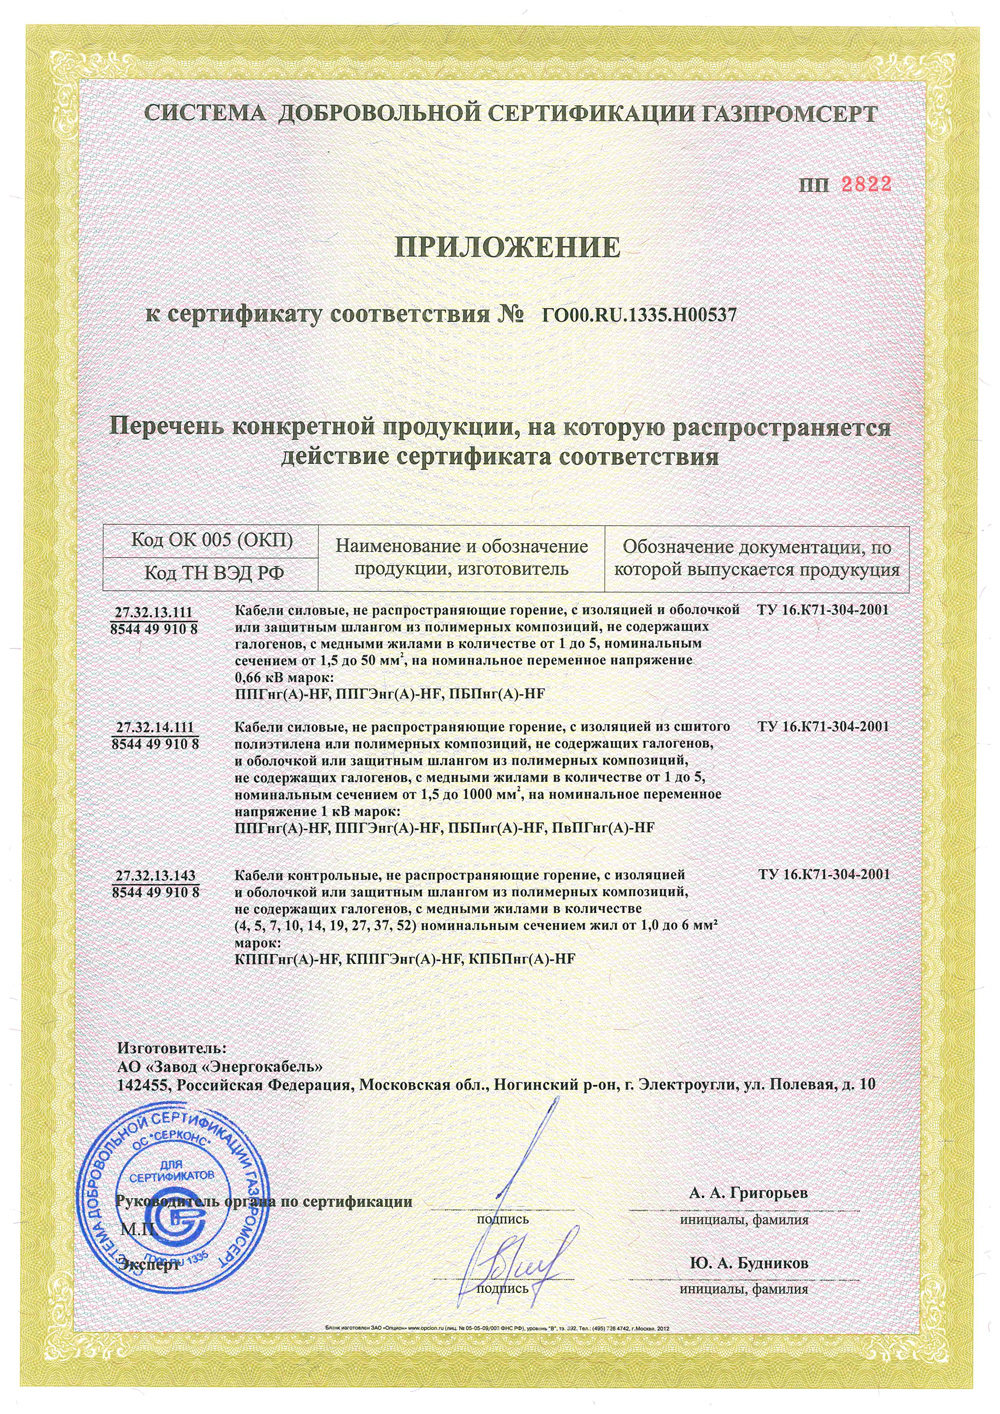 The appendix to the Certificate of Conformity № ГО00.RU.1335.Н00537.